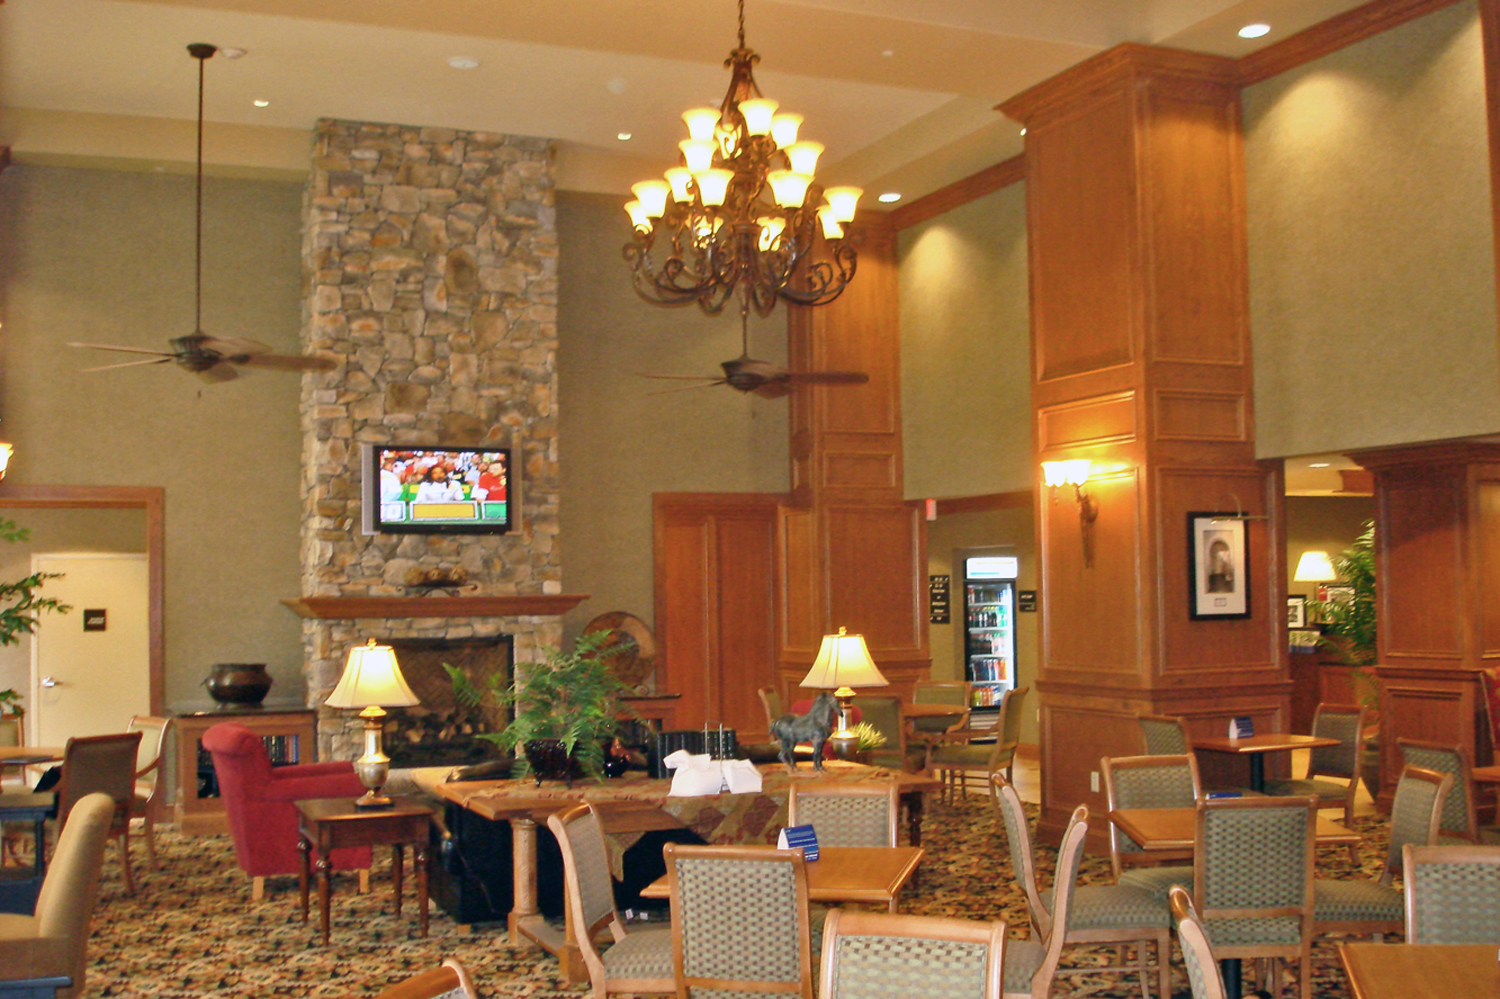 Hampton-Inn-in-Memphis,-Tn---Hospitality-Hotel-Design-Construction-5.jpg